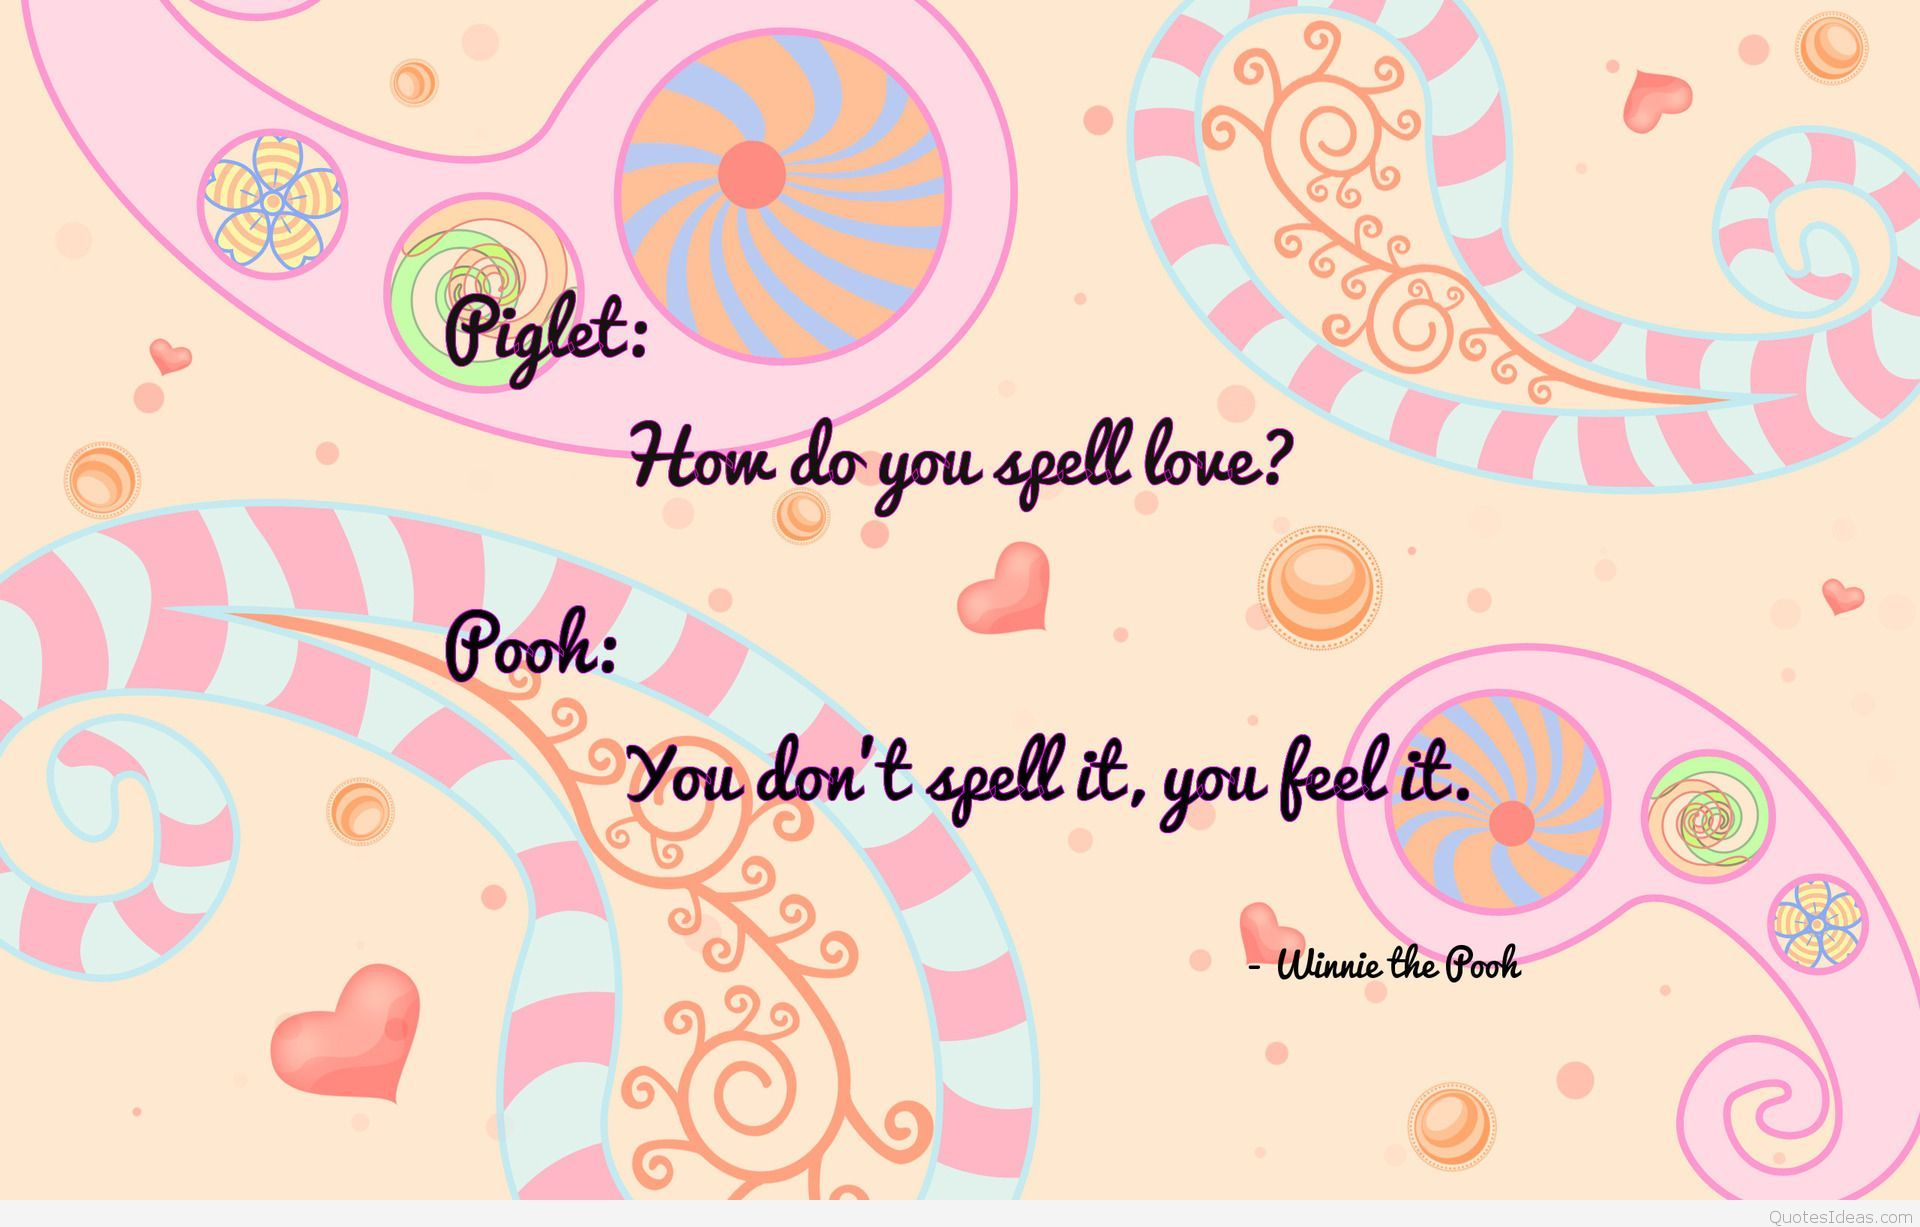 Download Free Cute Quotes Wallpaper Hd For Desktop Wallpaper Cute Love Wallpapers Cute Computer Backgrounds Desktop Background Quote